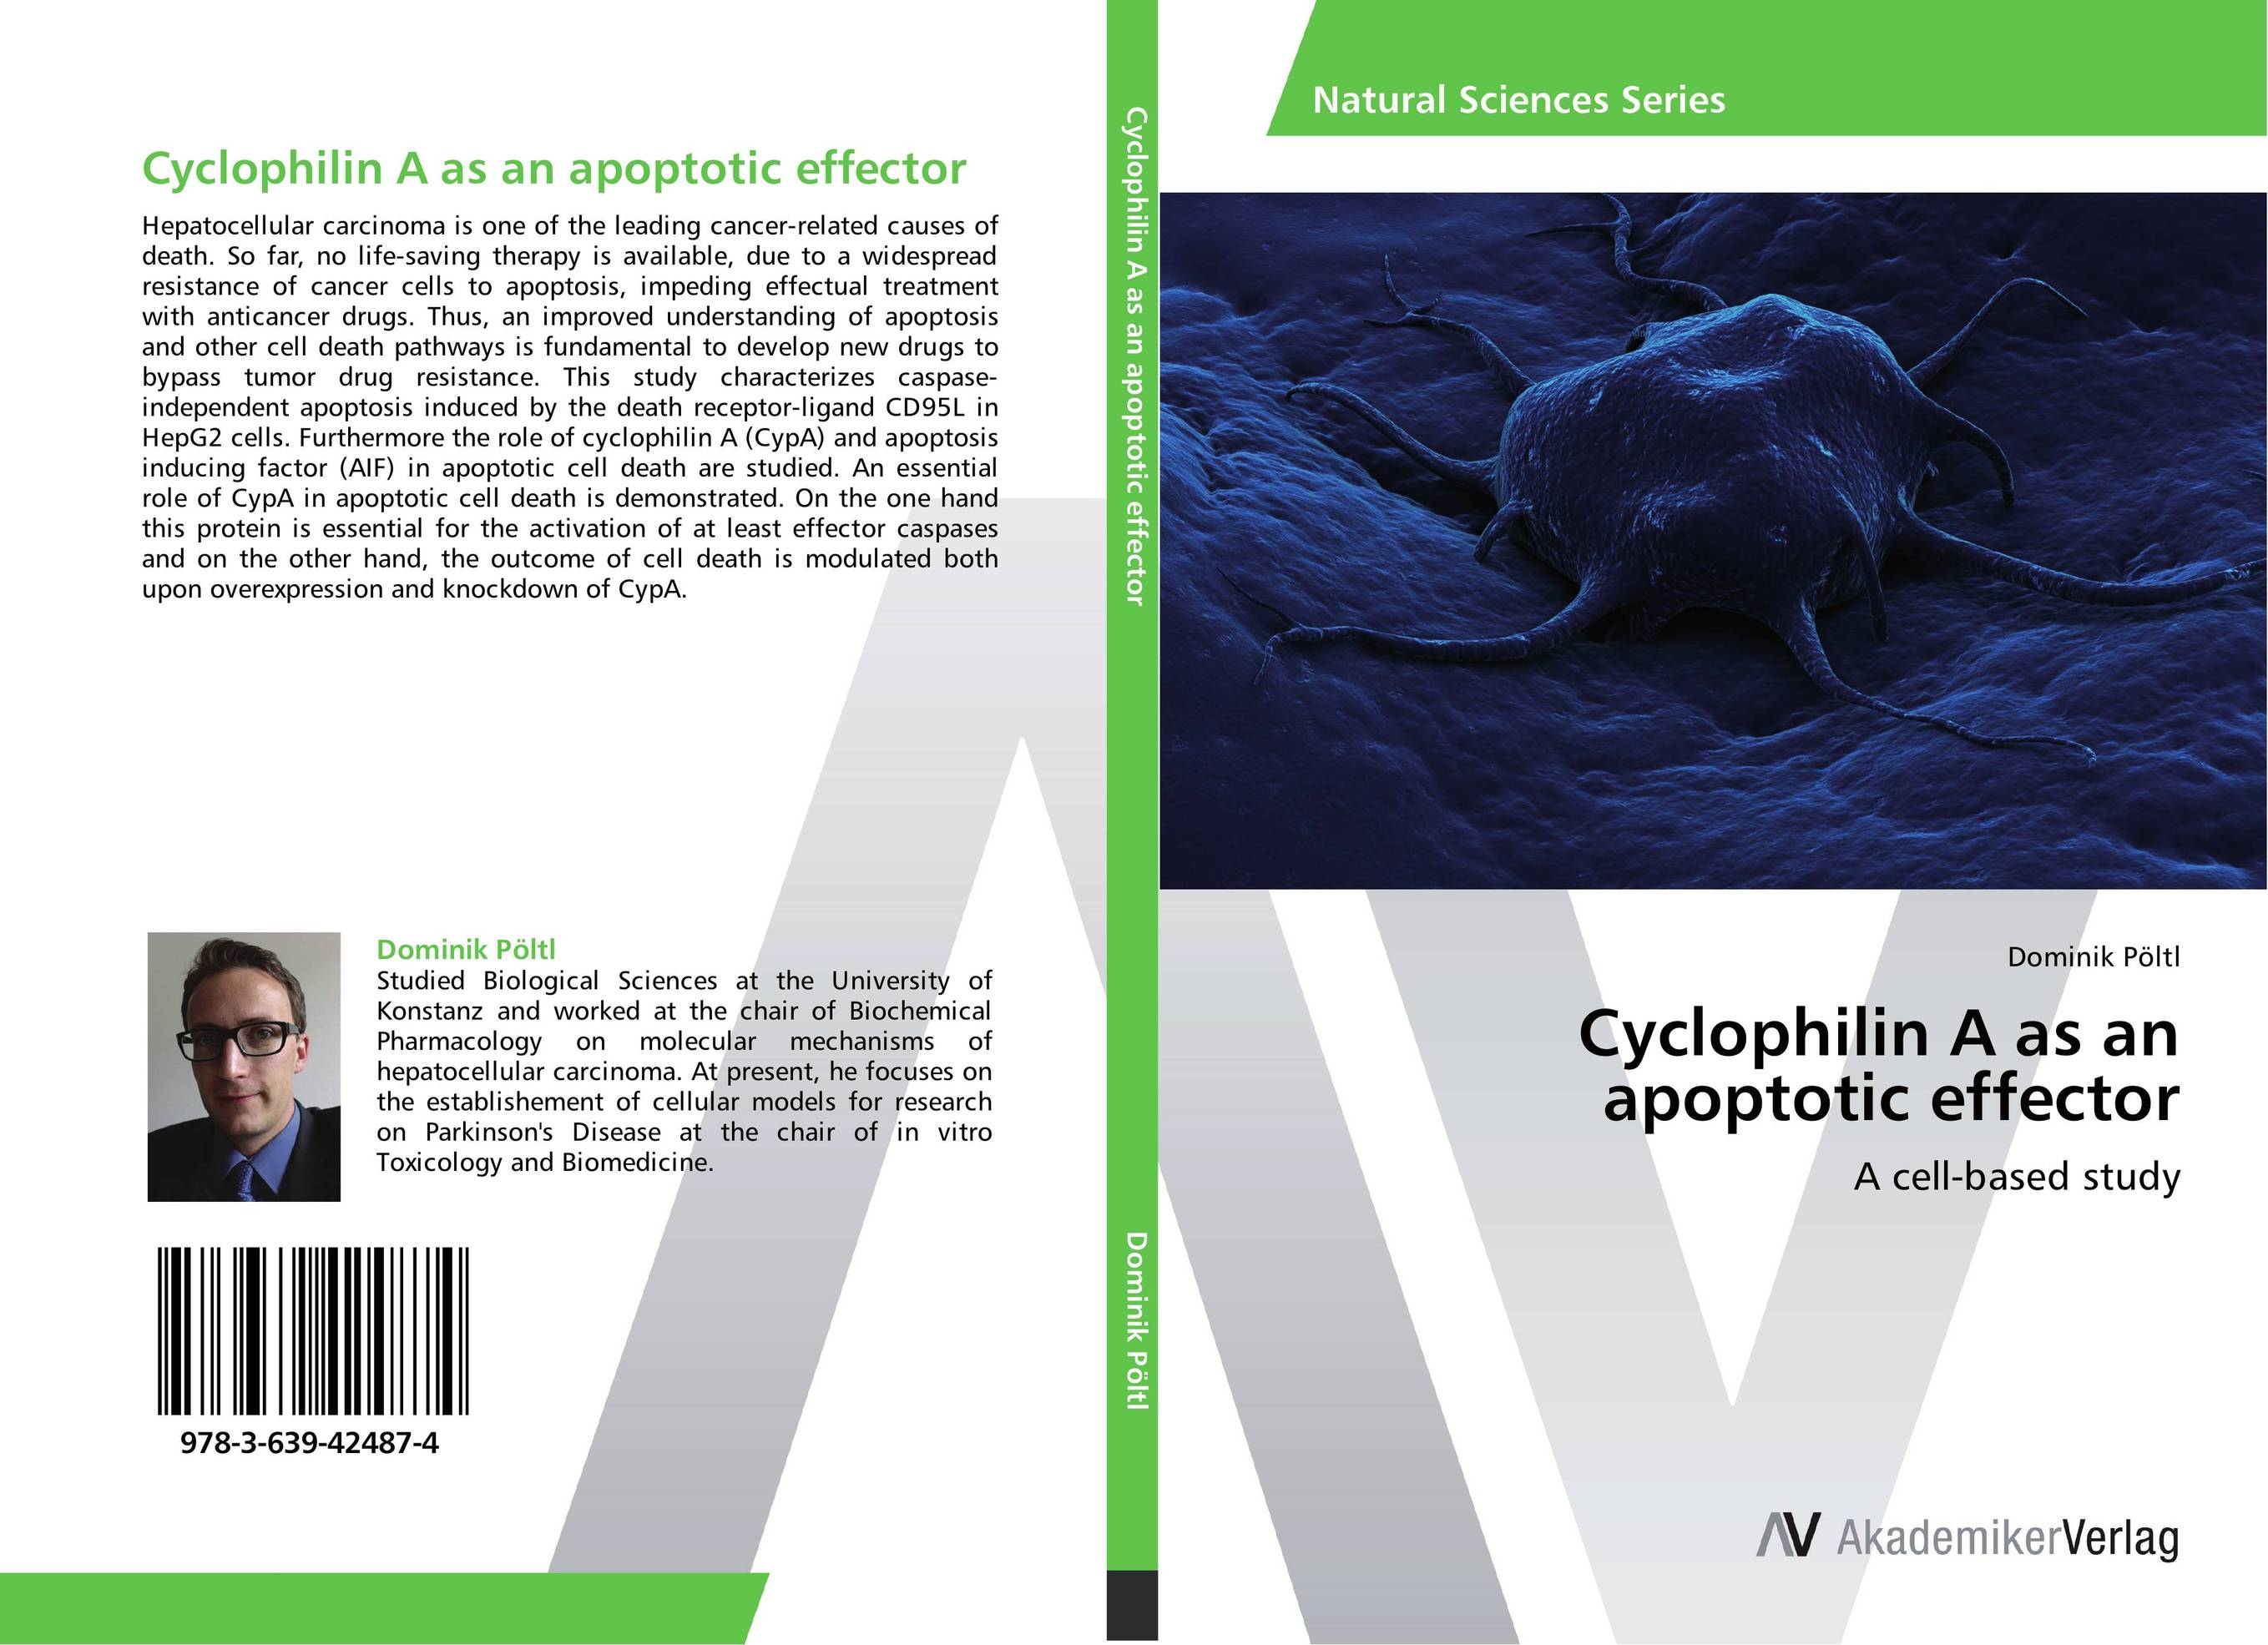 Cyclophilin A as an apoptotic effector understanding death